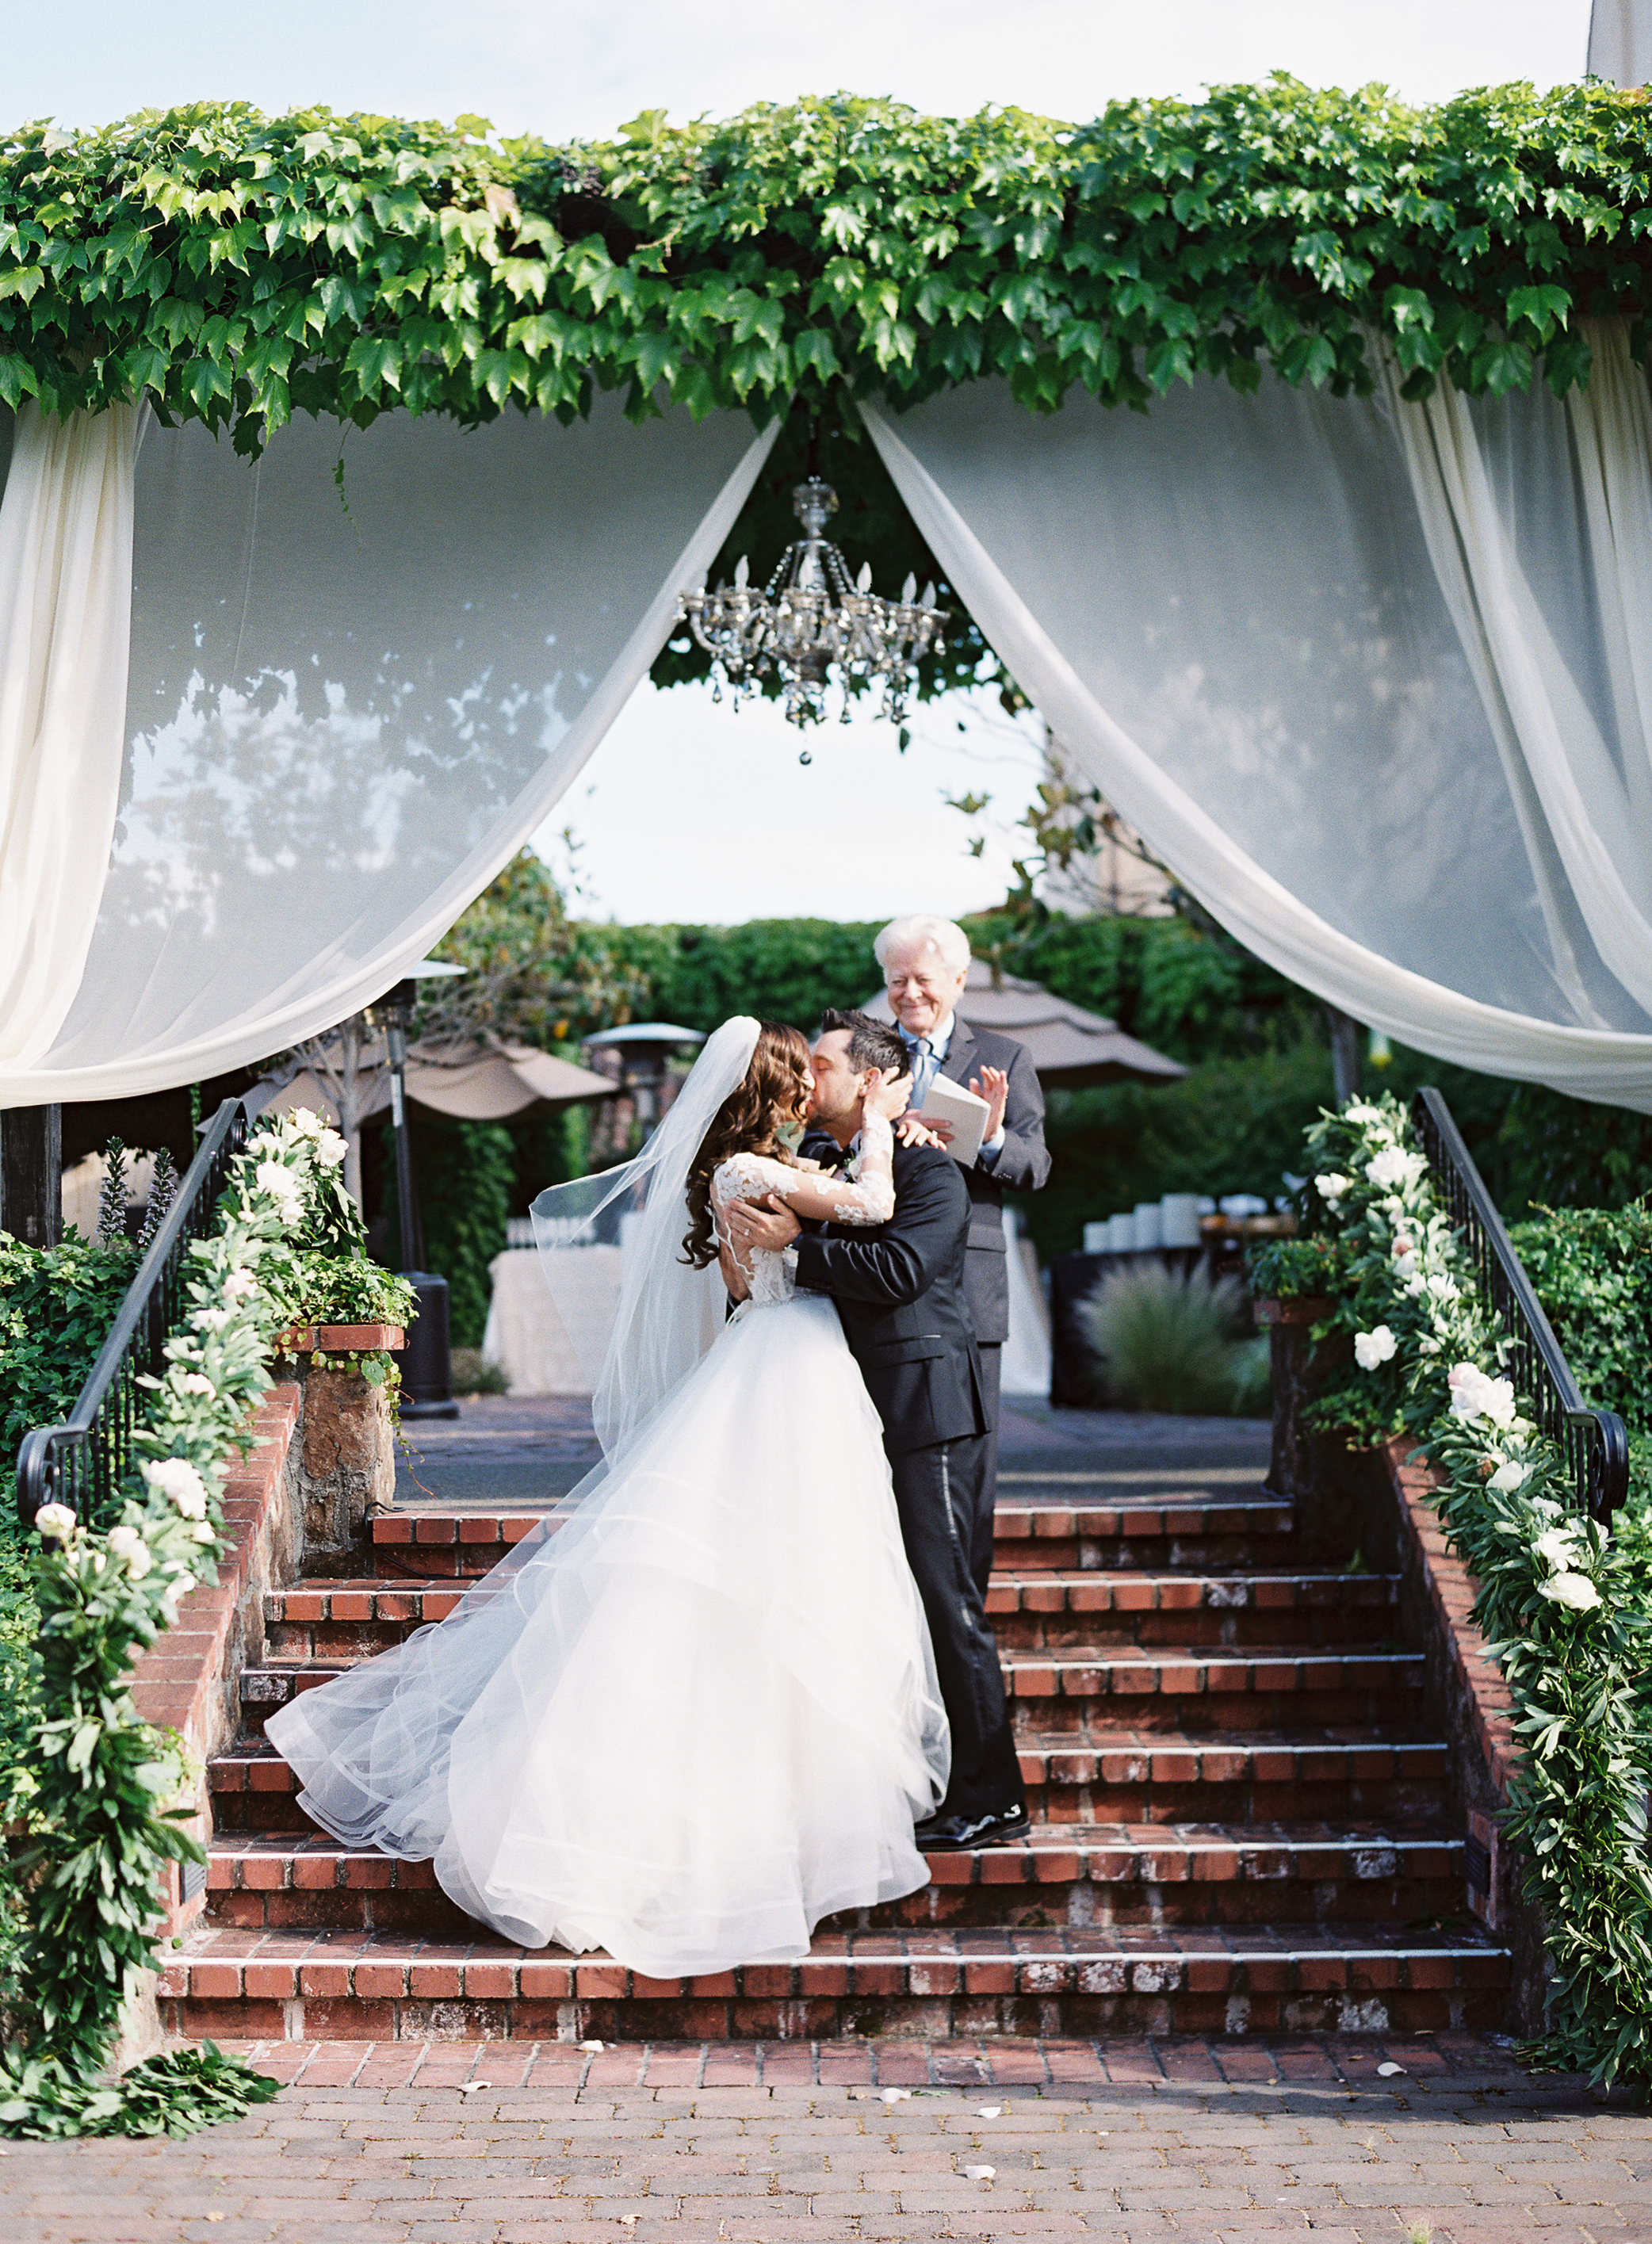 Meghan Mehan Photography | Fine Art Film Wedding Photographer | California | San Francisco | Napa | Sonoma | Santa Barbara | Big Sur | Destination Wedding Photographer 135.jpg